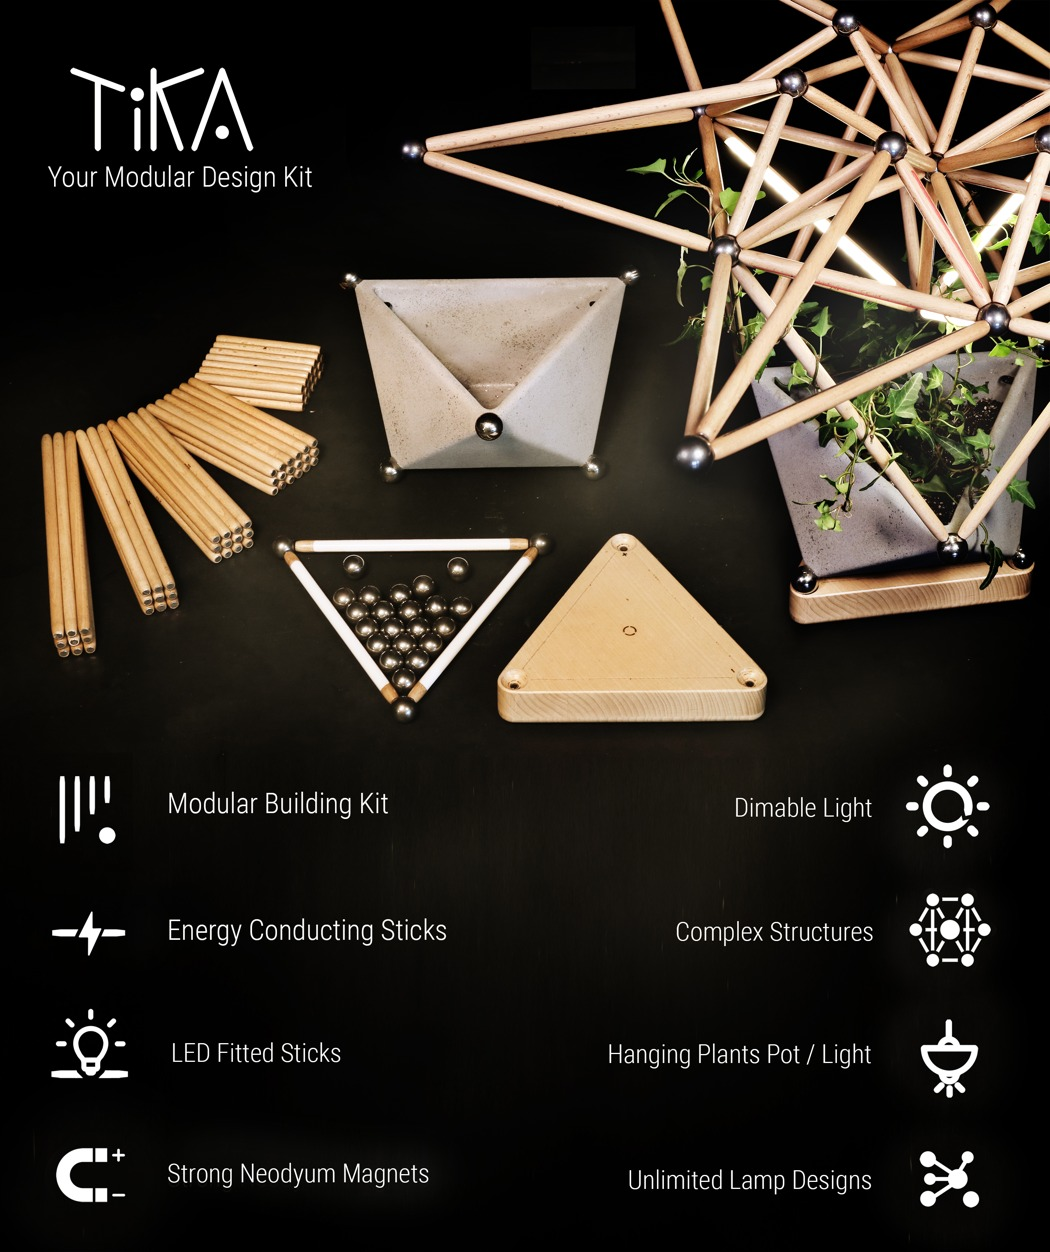 tika_modular_design_kit_01